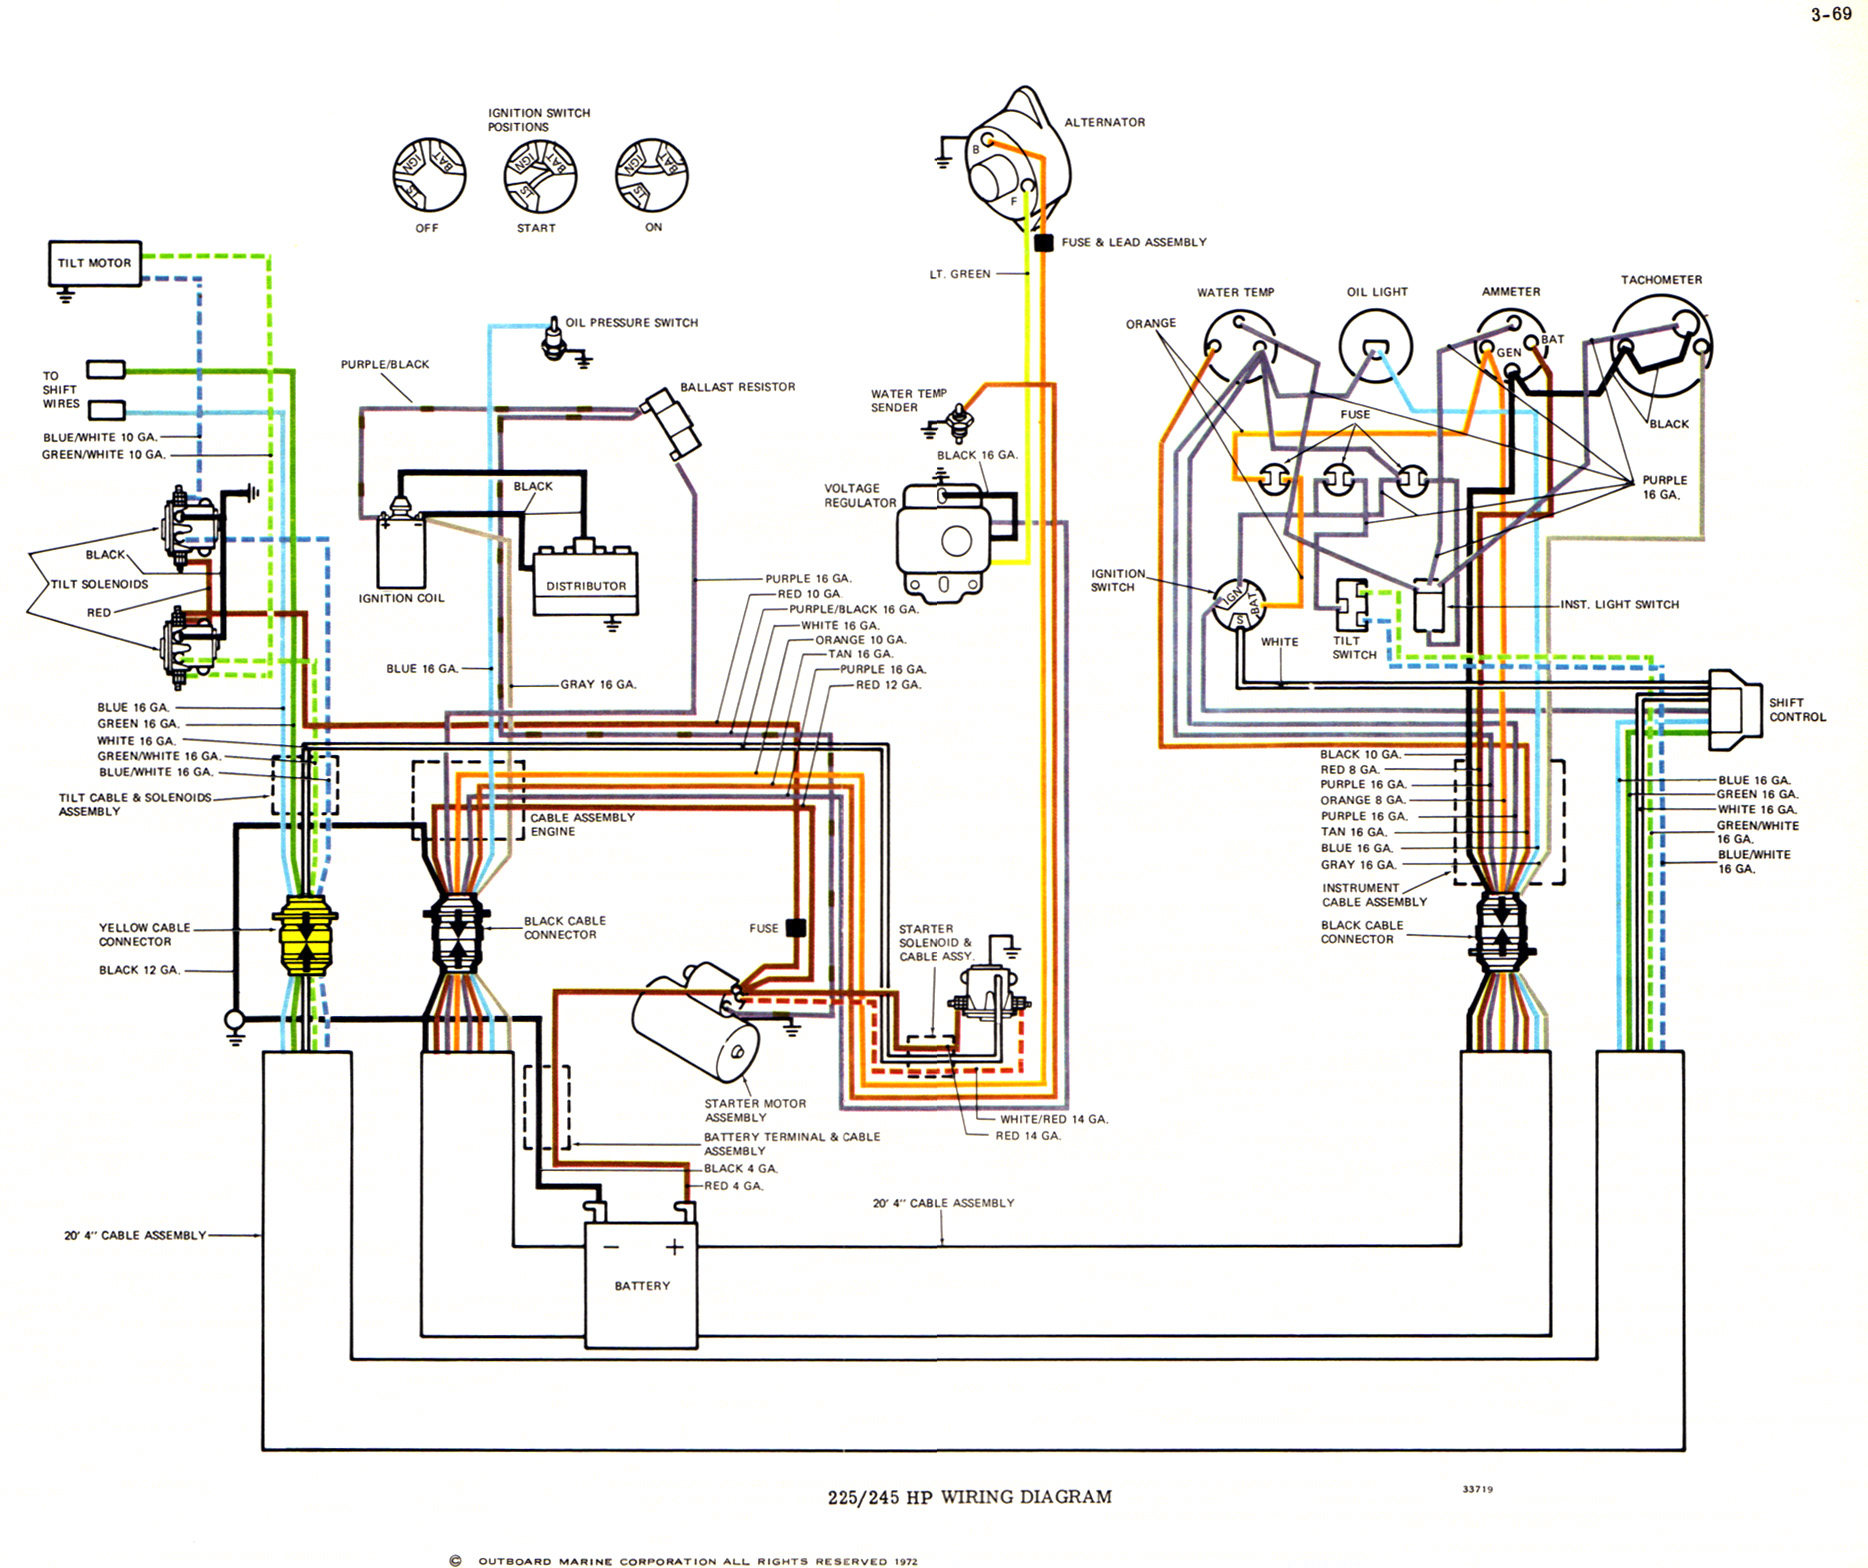 73_OMC_V8_all_big evinrude boats wiring � 2004 lee k shuster 120v wire diagram at eliteediting.co